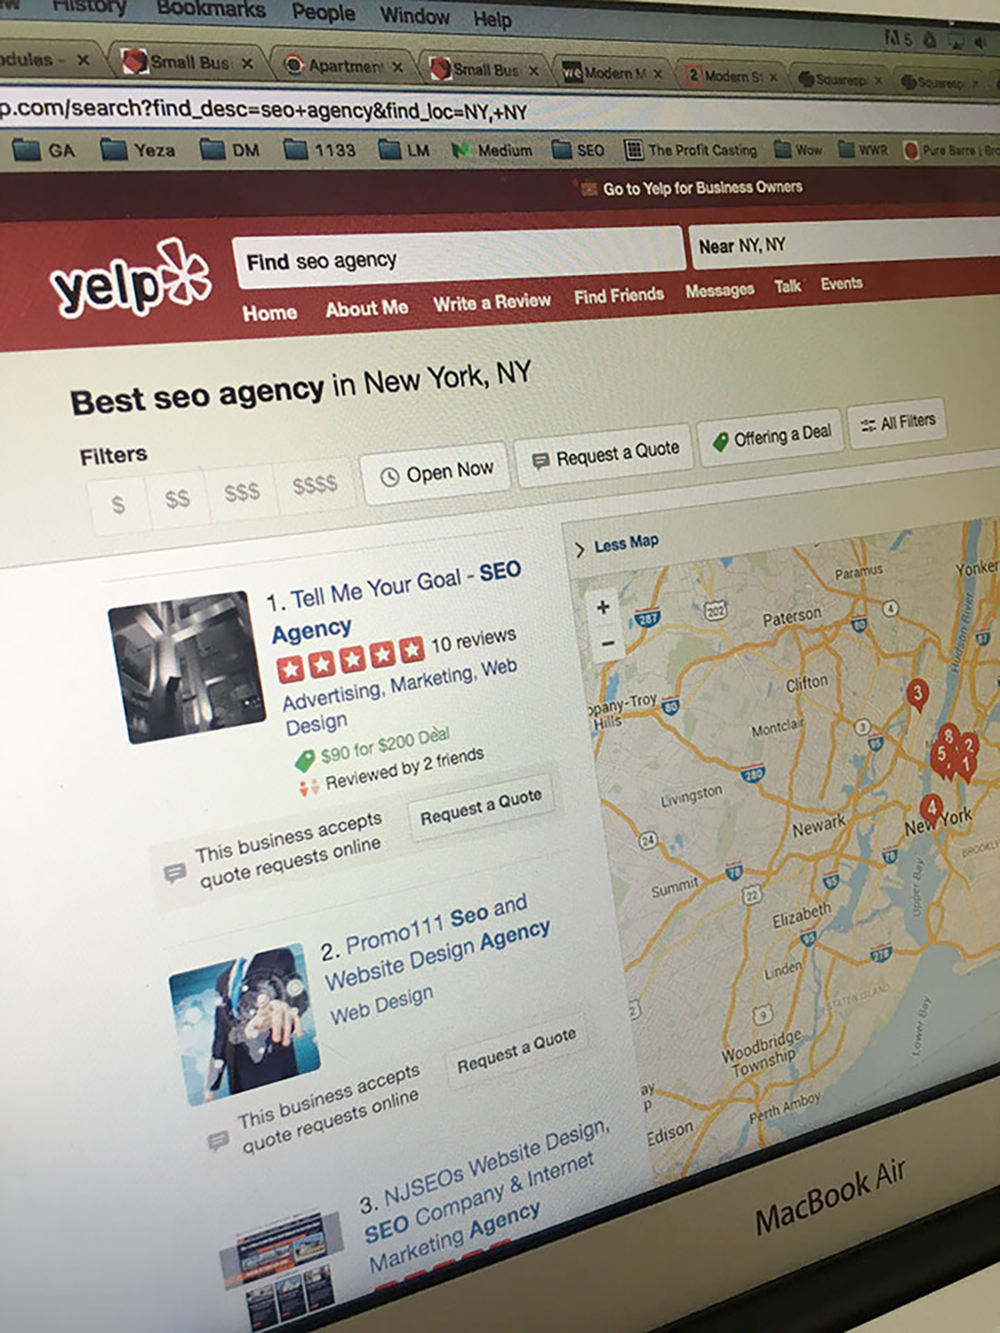 This is my listing for Tell Me Your Goal - SEO Agency on Yelp. I have a physical location in the Brooklyn neighborhood of Greenpoint.